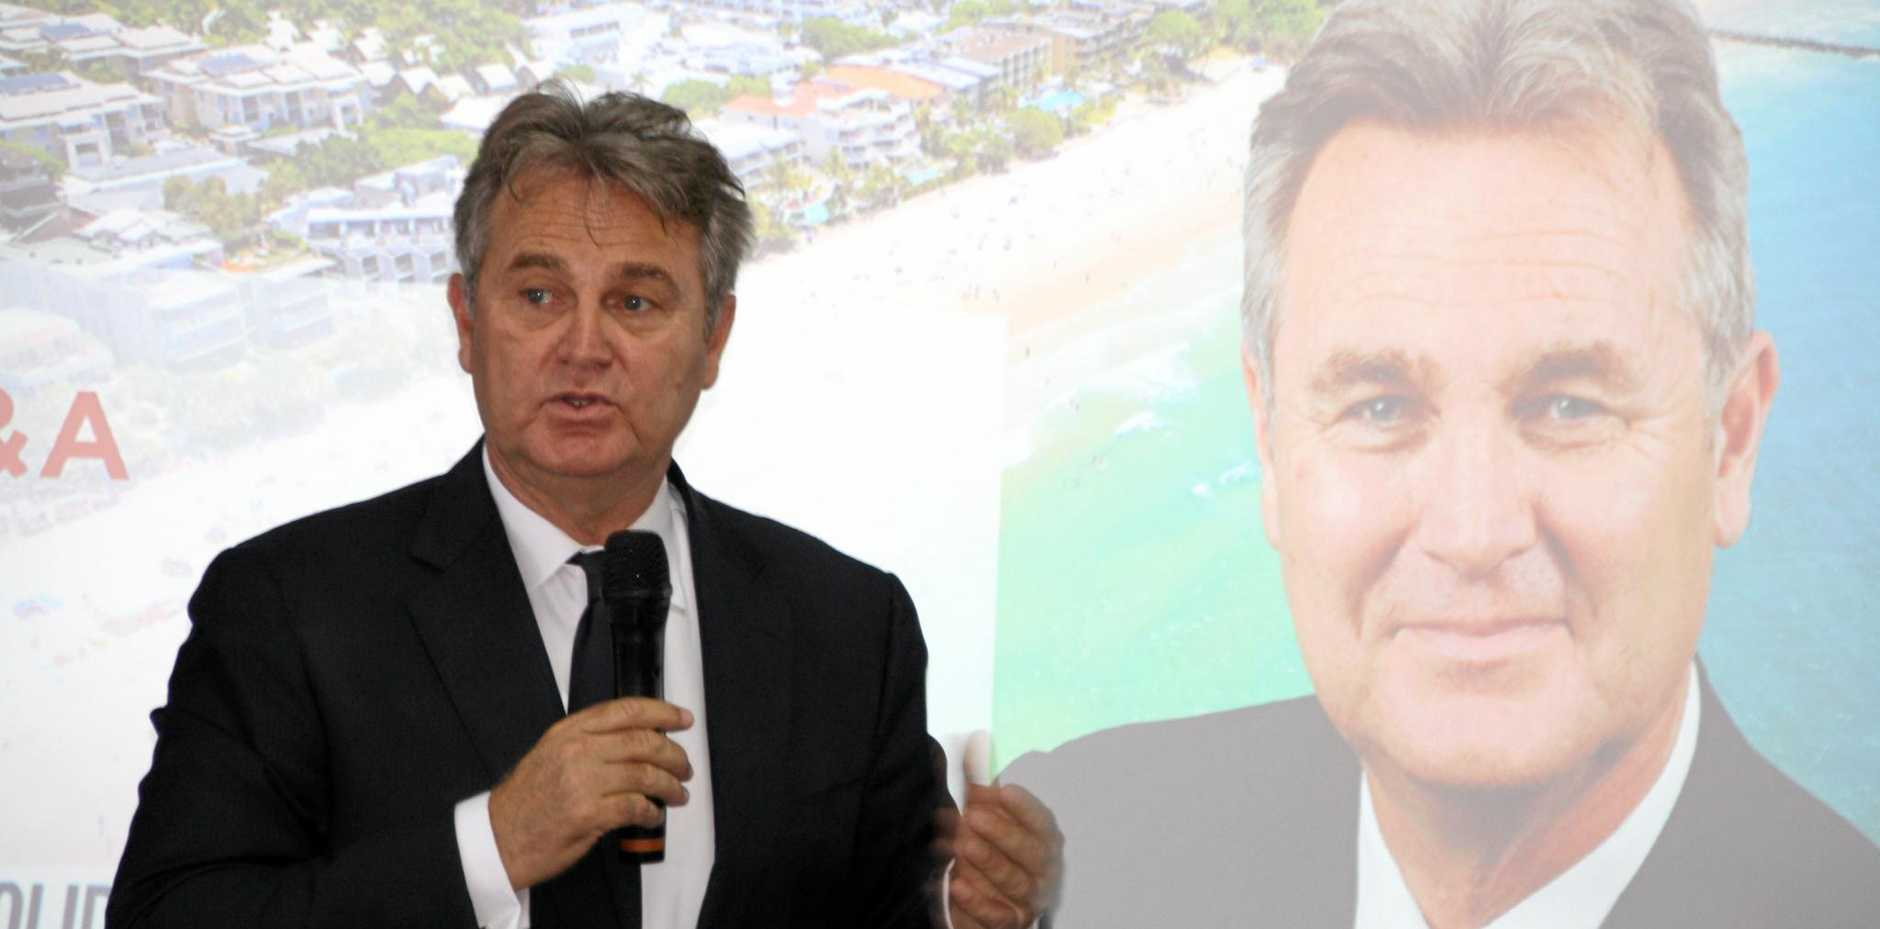 Social commentator Bernard Salt speaking at the UDIA Sunshine Coast breakfast meeting at Maroochy Surf Club.